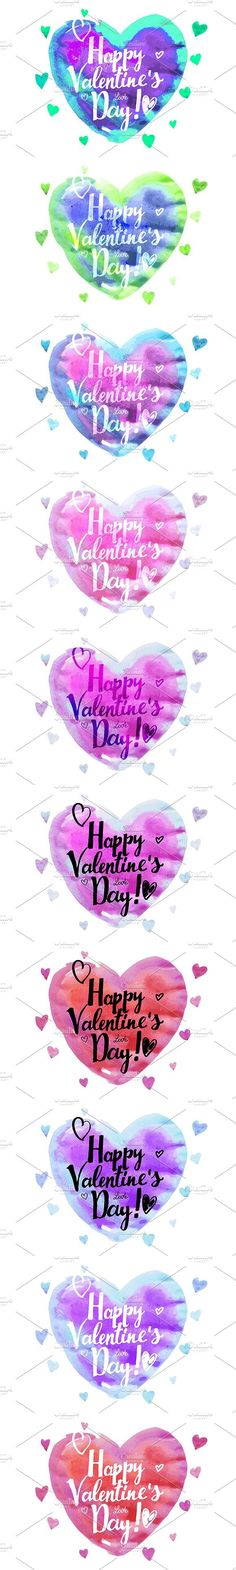 10 Watercolor heart. Valentine's day. Wedding Card Templates